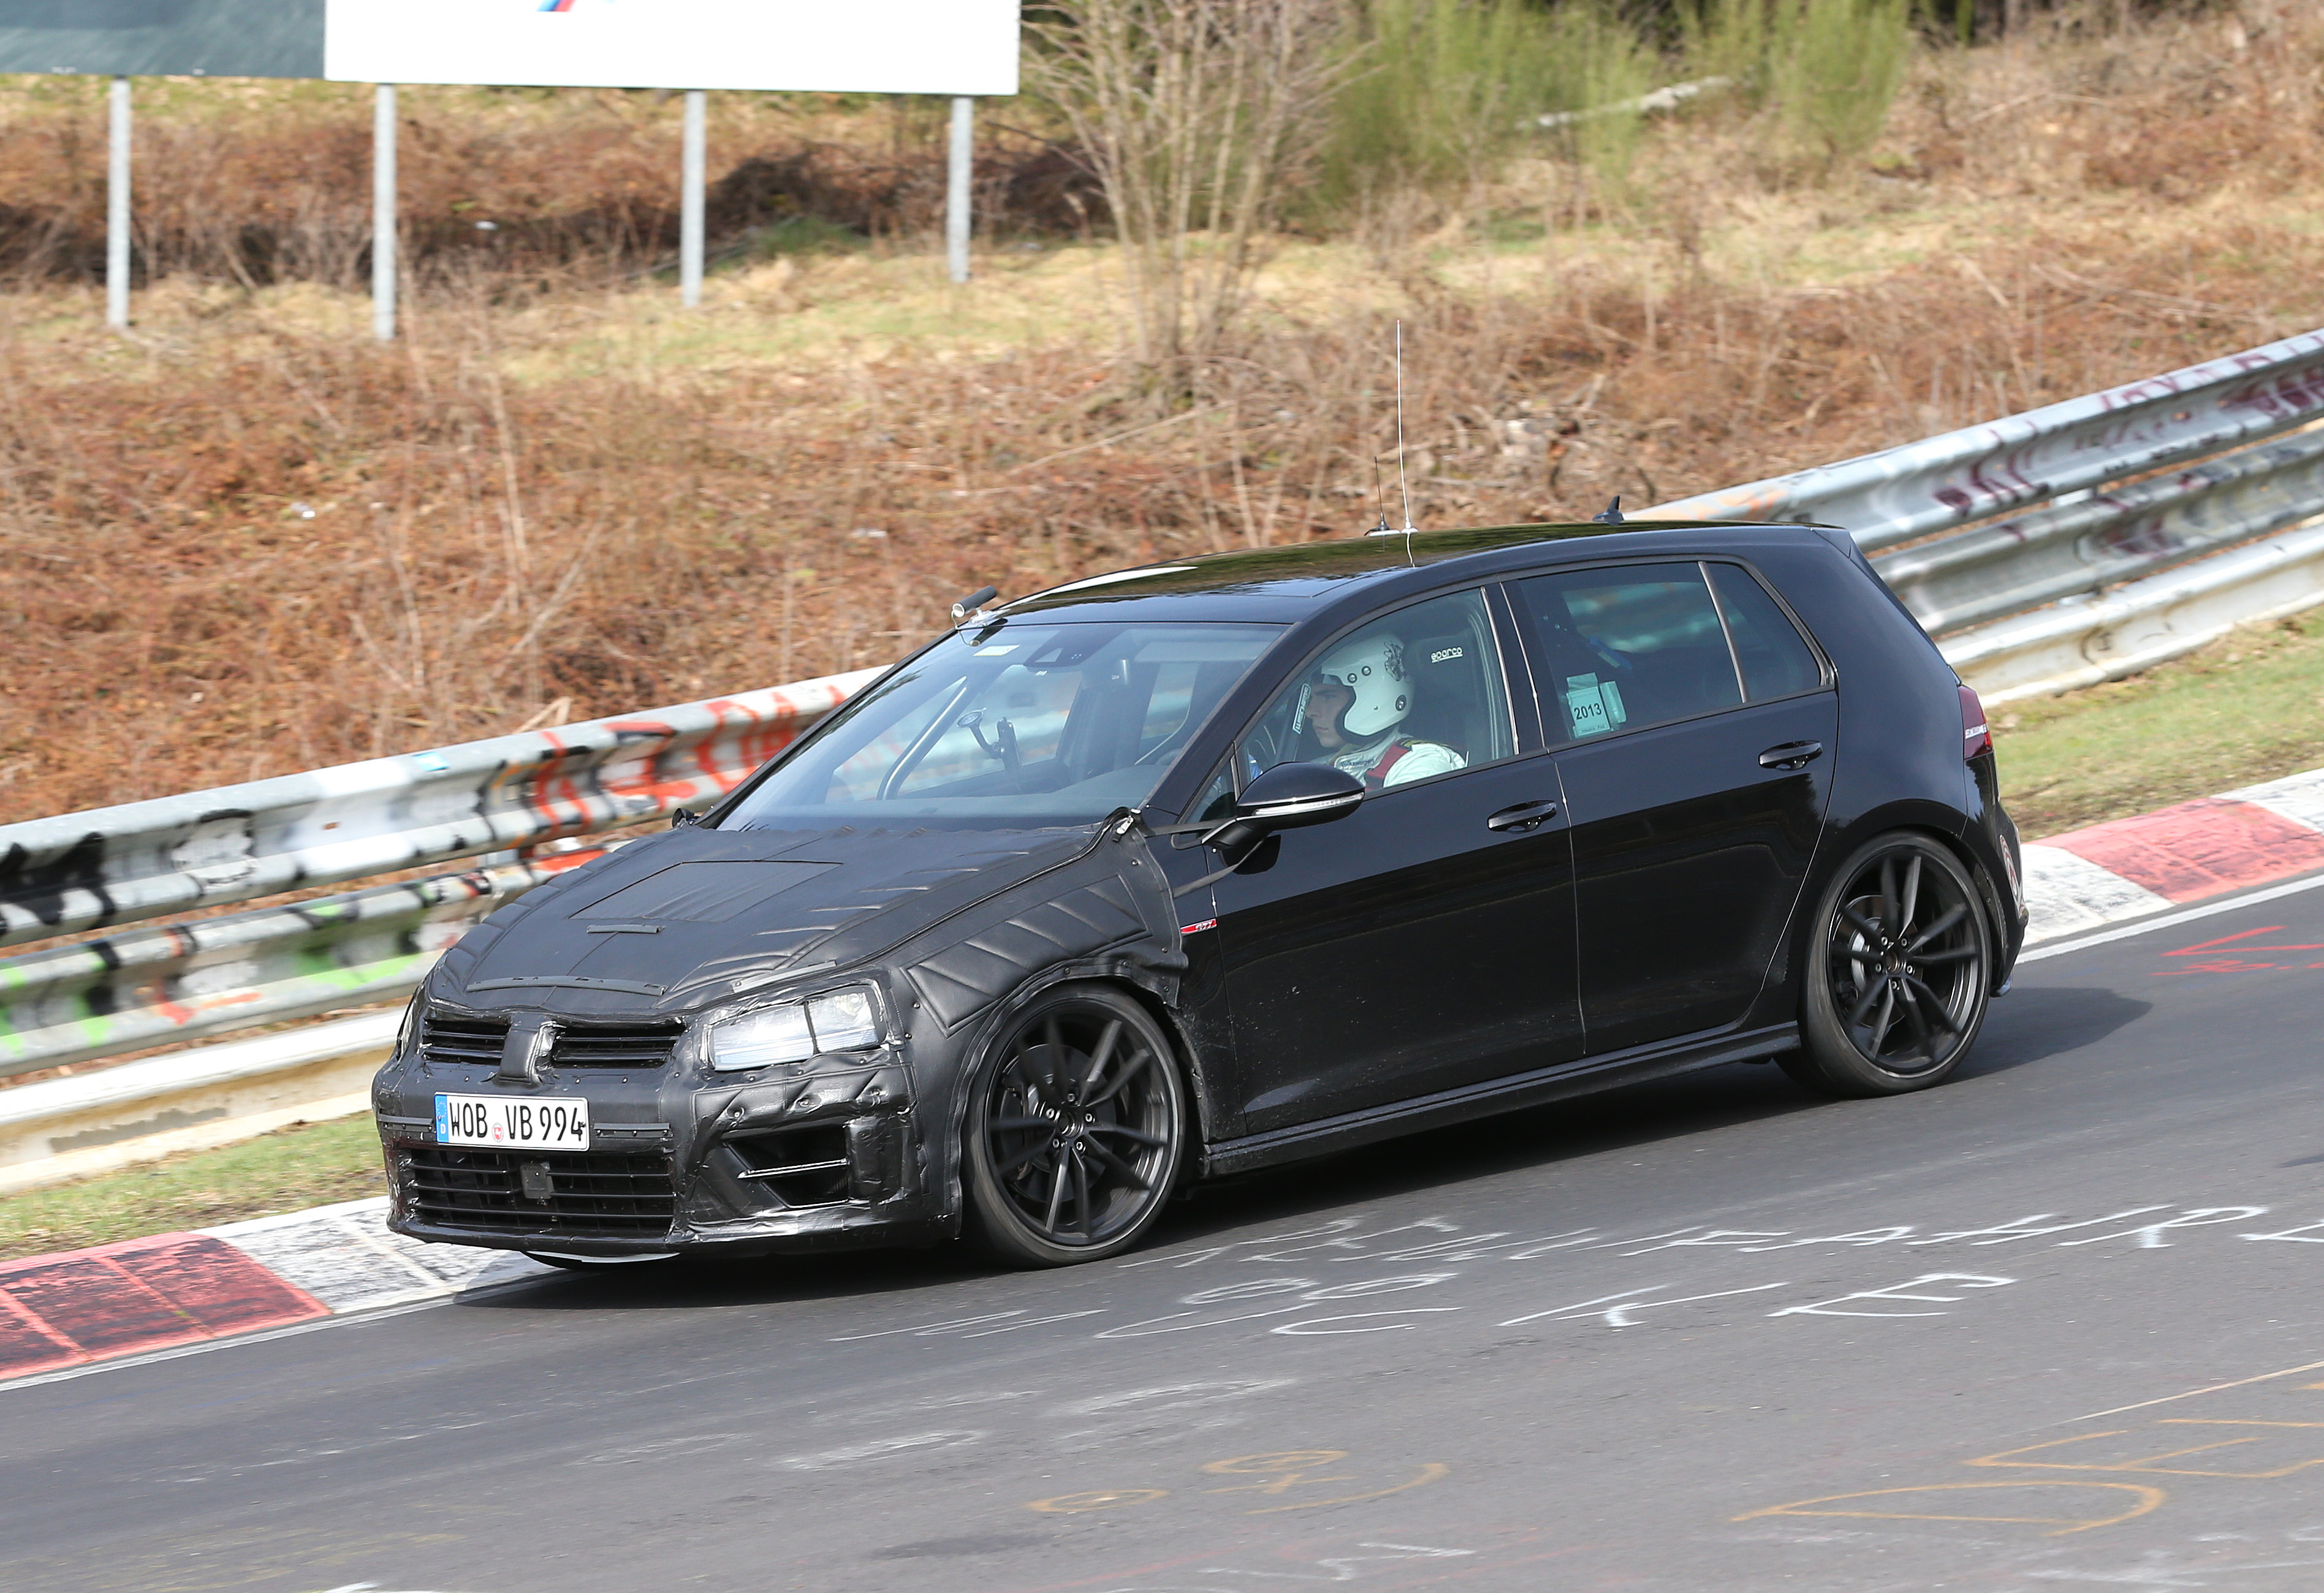 vw golf 7 r spy photos golf mk7 forum. Black Bedroom Furniture Sets. Home Design Ideas